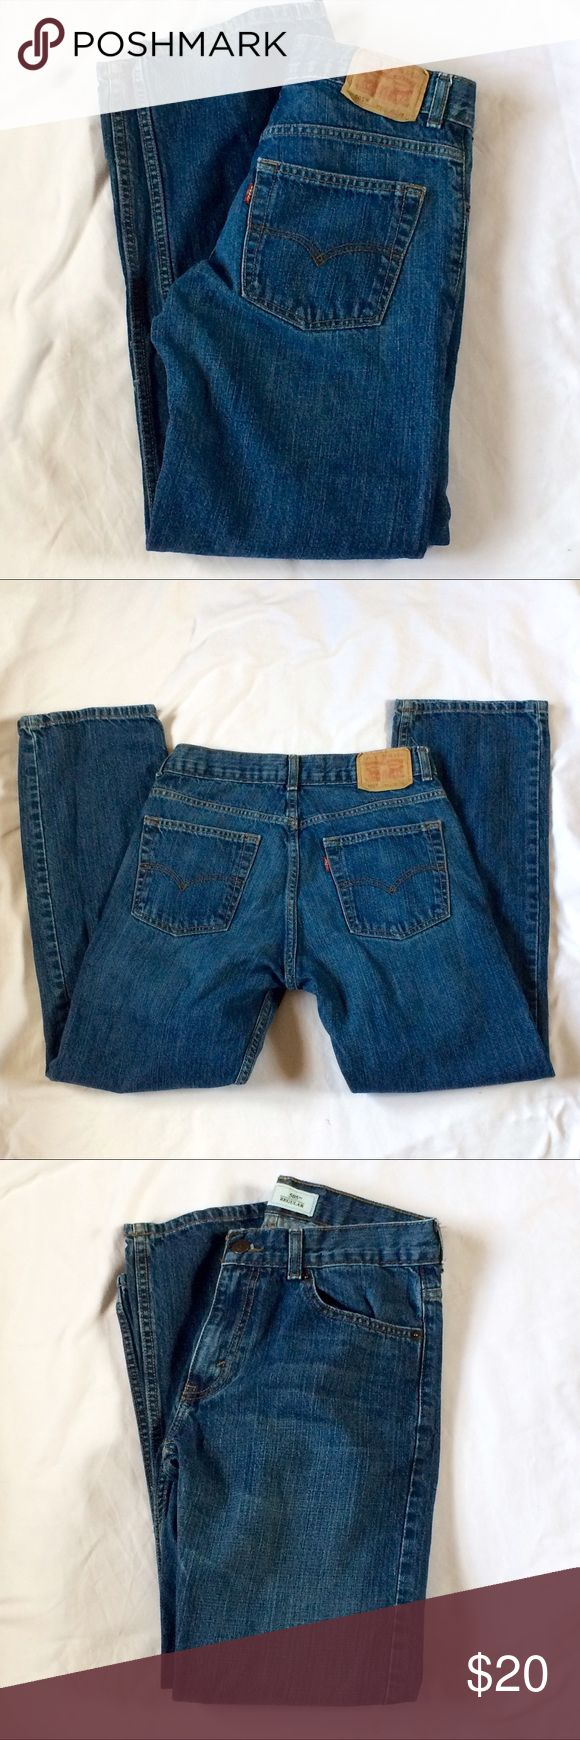 Levi's 505 Jeans Boy's 16 Levi's 505 Regular Jeans Boy's 16. Three pockets in the front. Two in the back. Size 16 regular. Waist 28, length 28. Levi's Bottoms Jeans